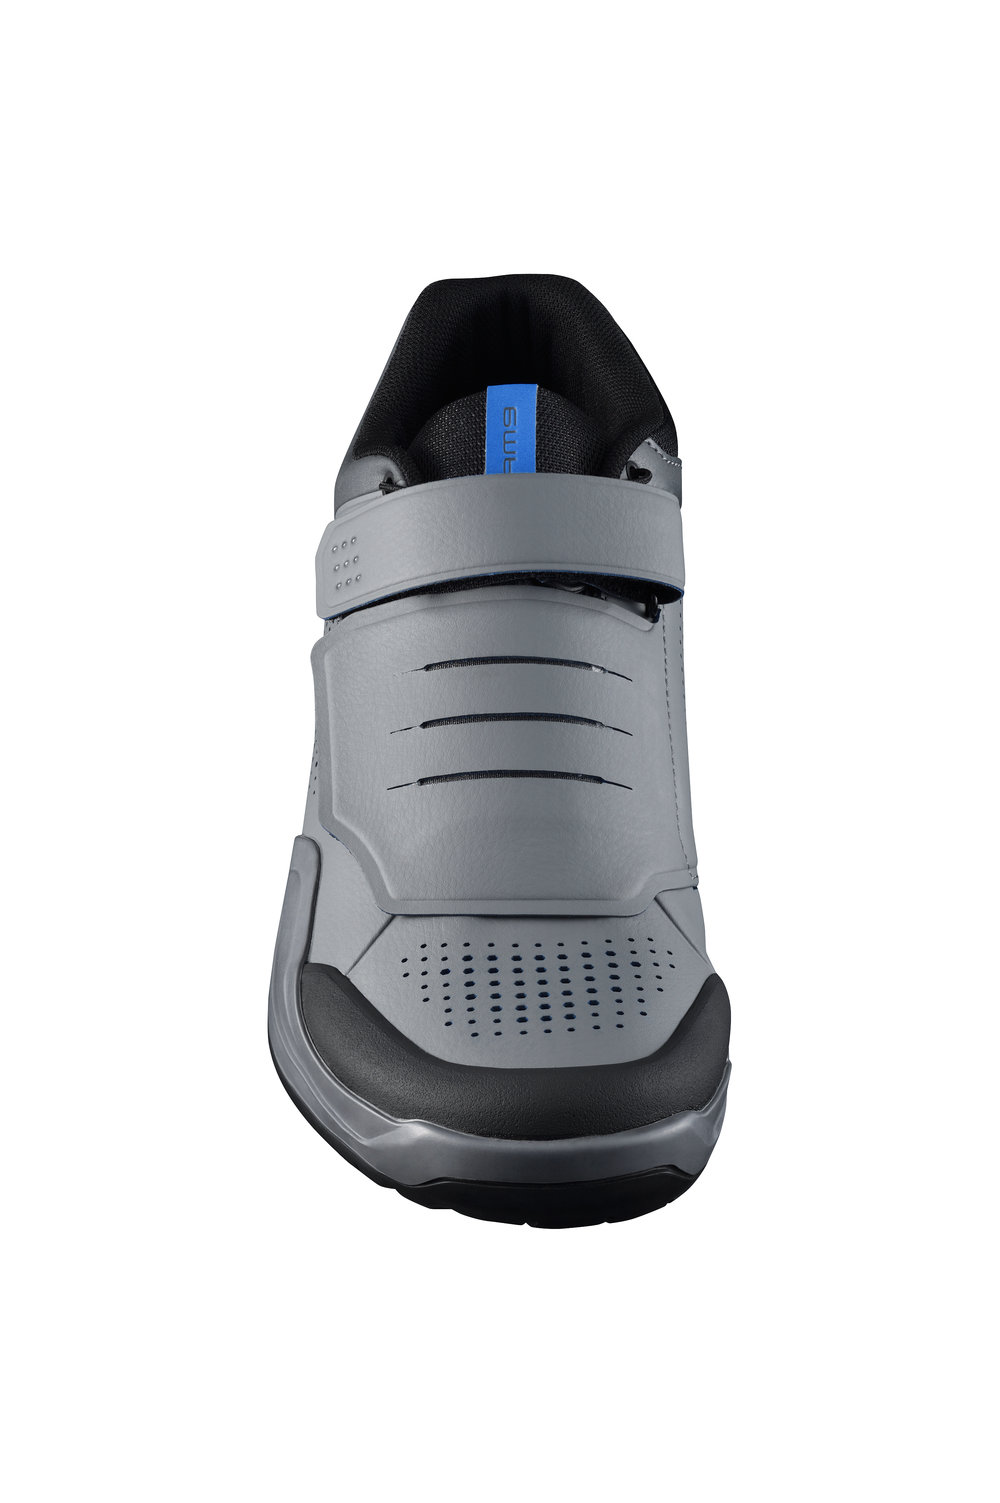 SH-AM901_GRAY-BLUE_Front_2Standard_2018CyclingFootwear0033.jpg